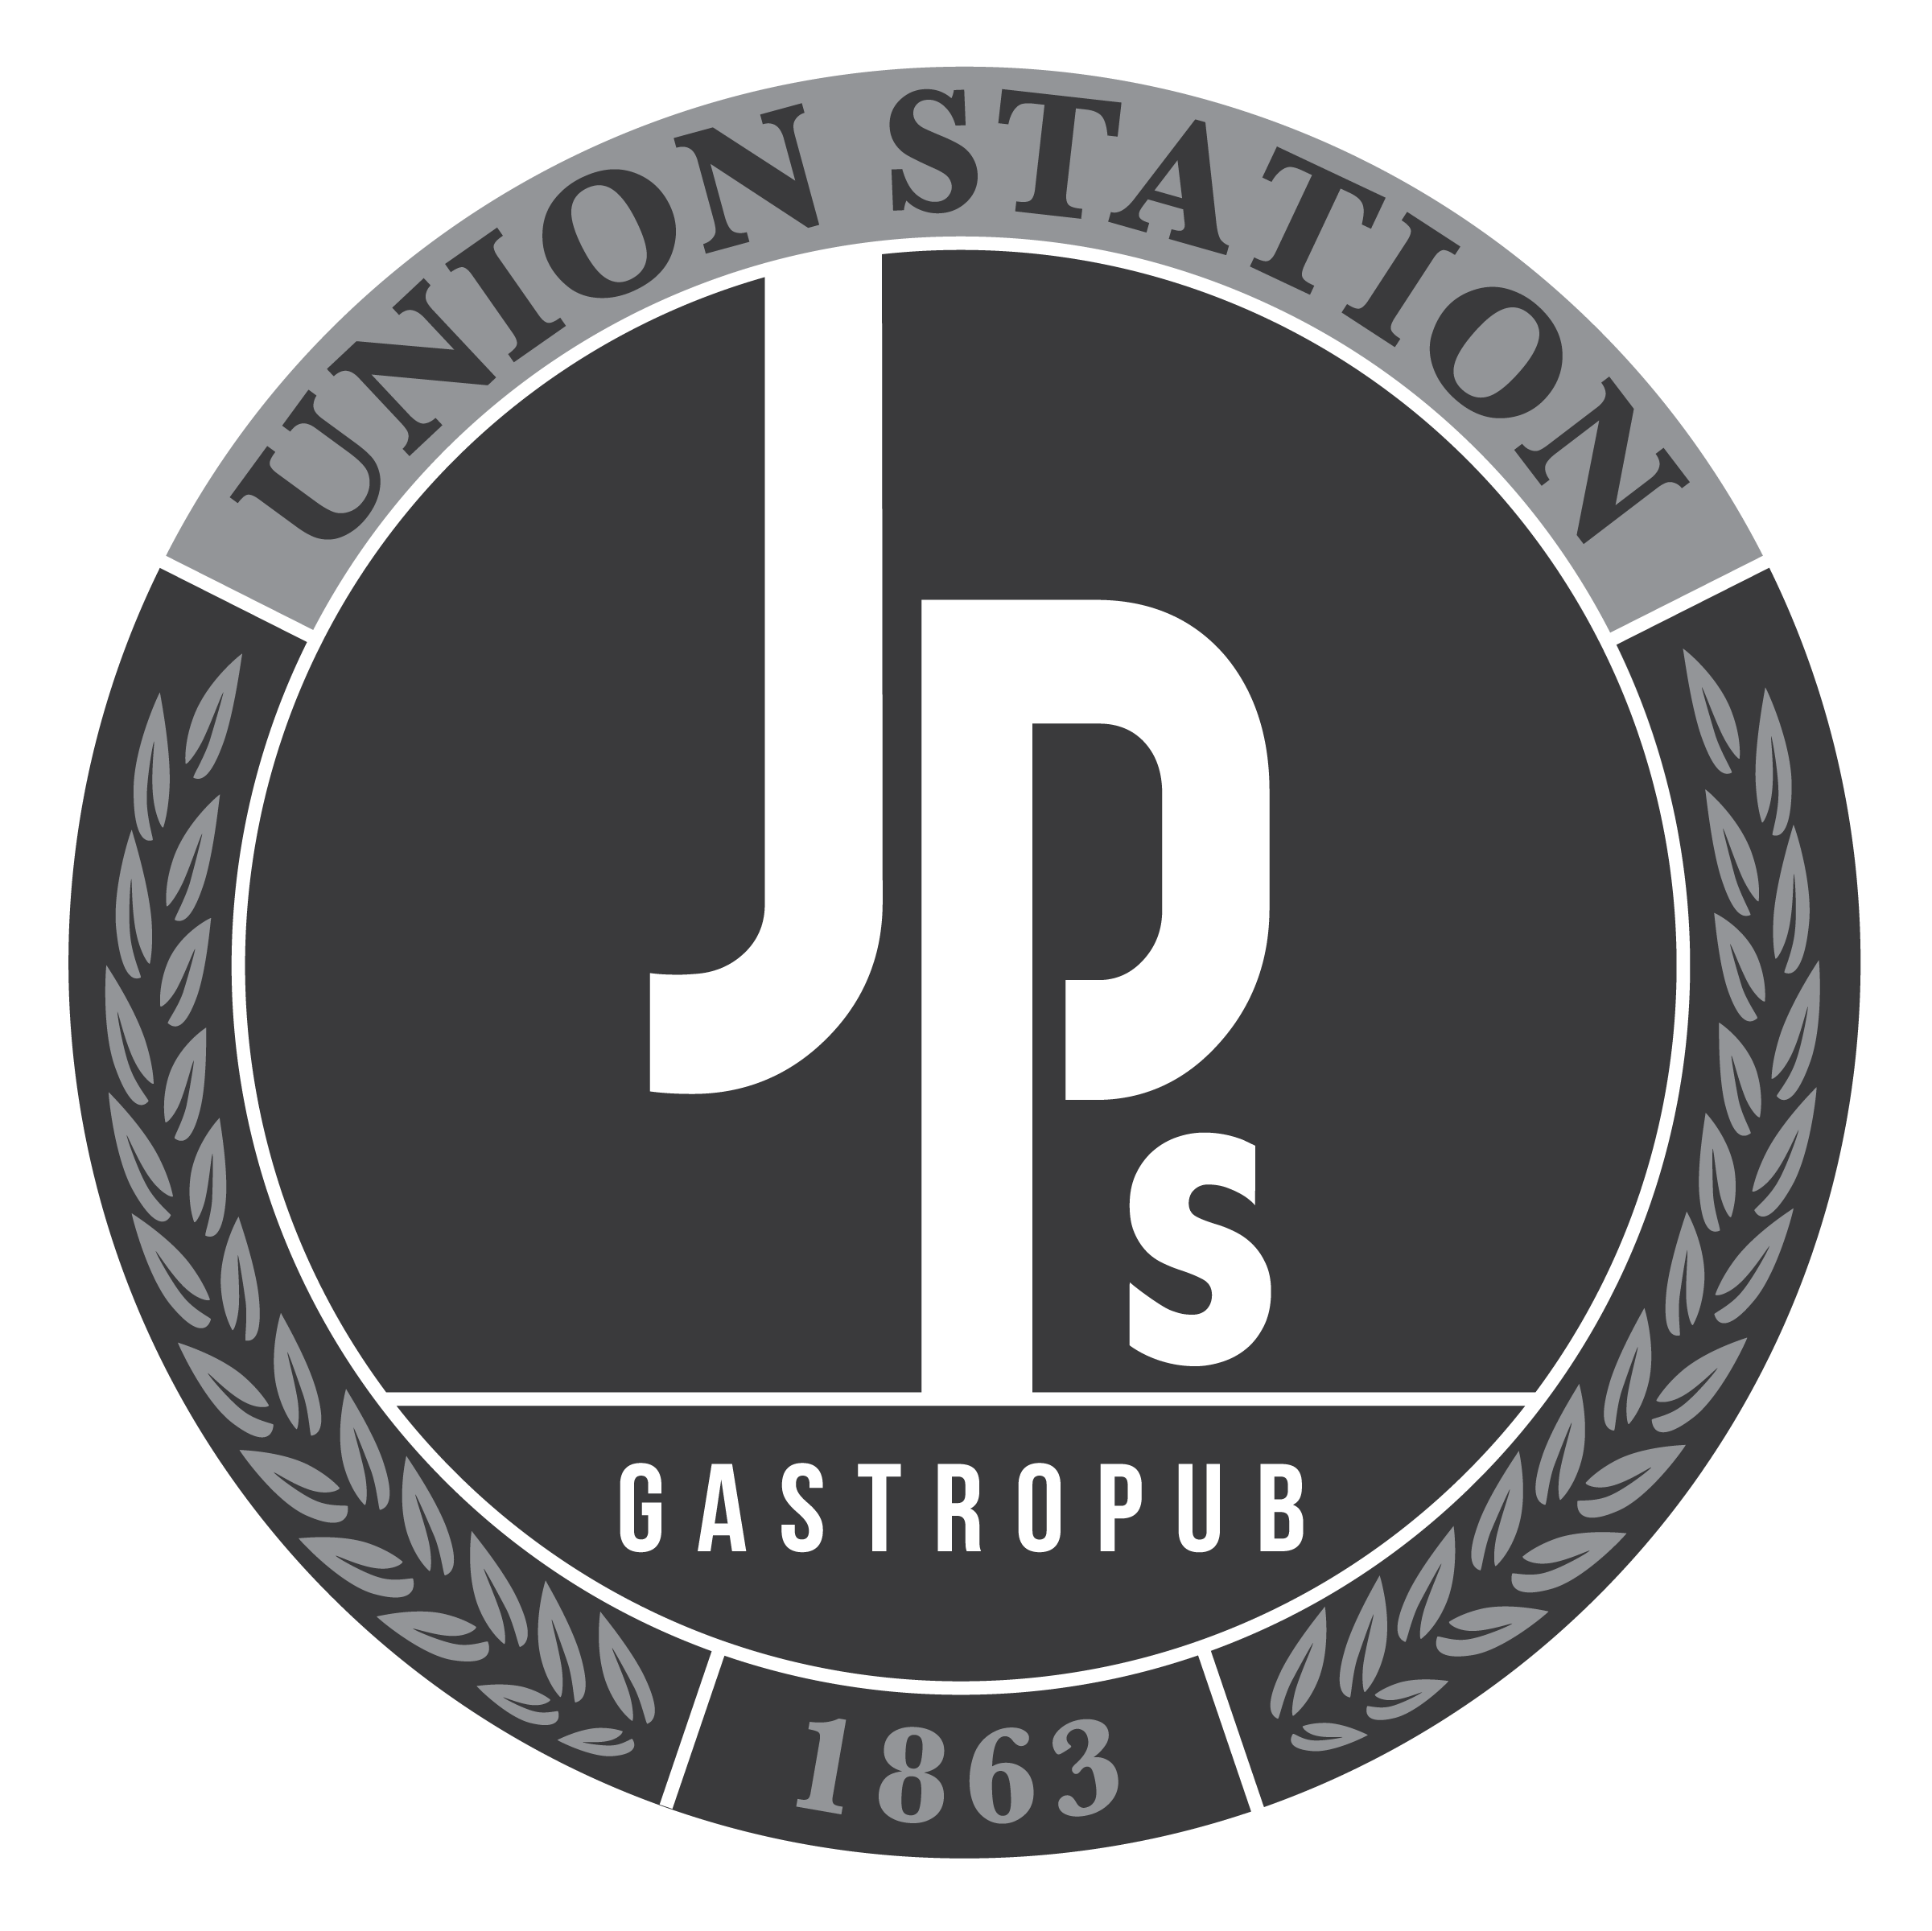 Union Station by JP's